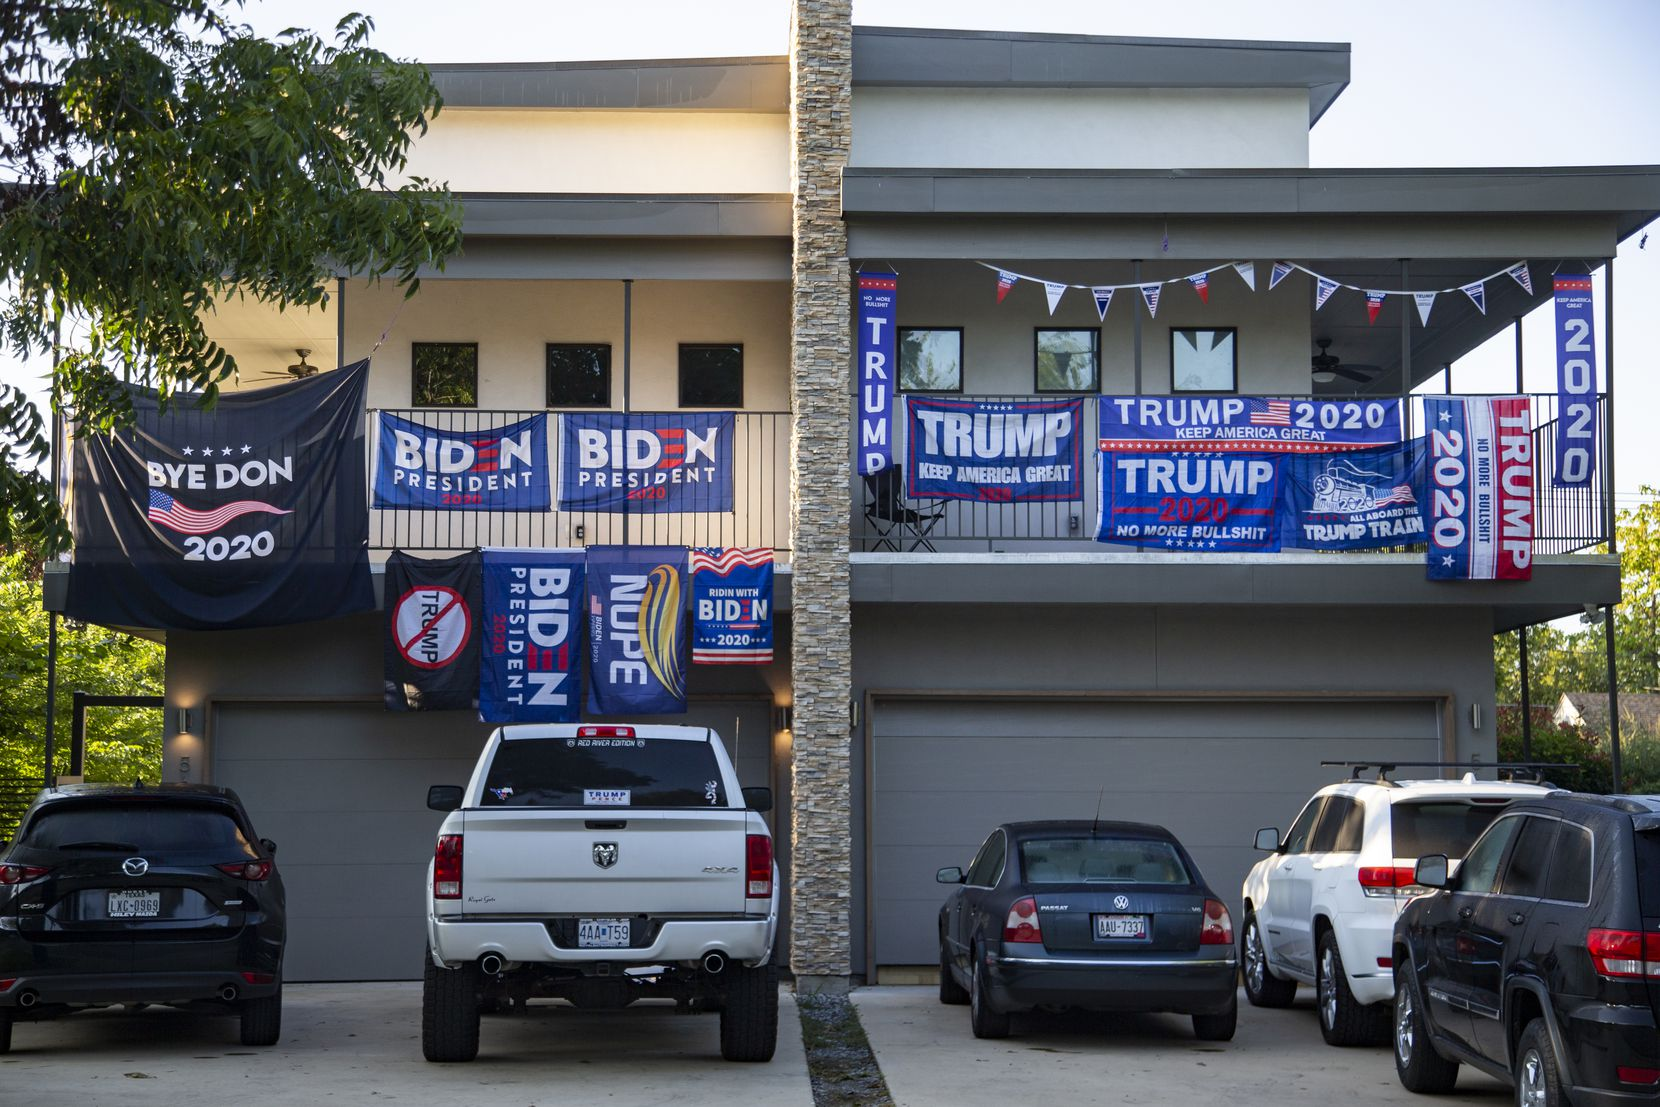 In late September, as the date for early voting to begin in Texas drew closer, apartment neighbors at the corner of Anita Street and Greenville Avenue in Dallas showed off their dueling allegiances to President Donald Trump and challenger Joe Biden.